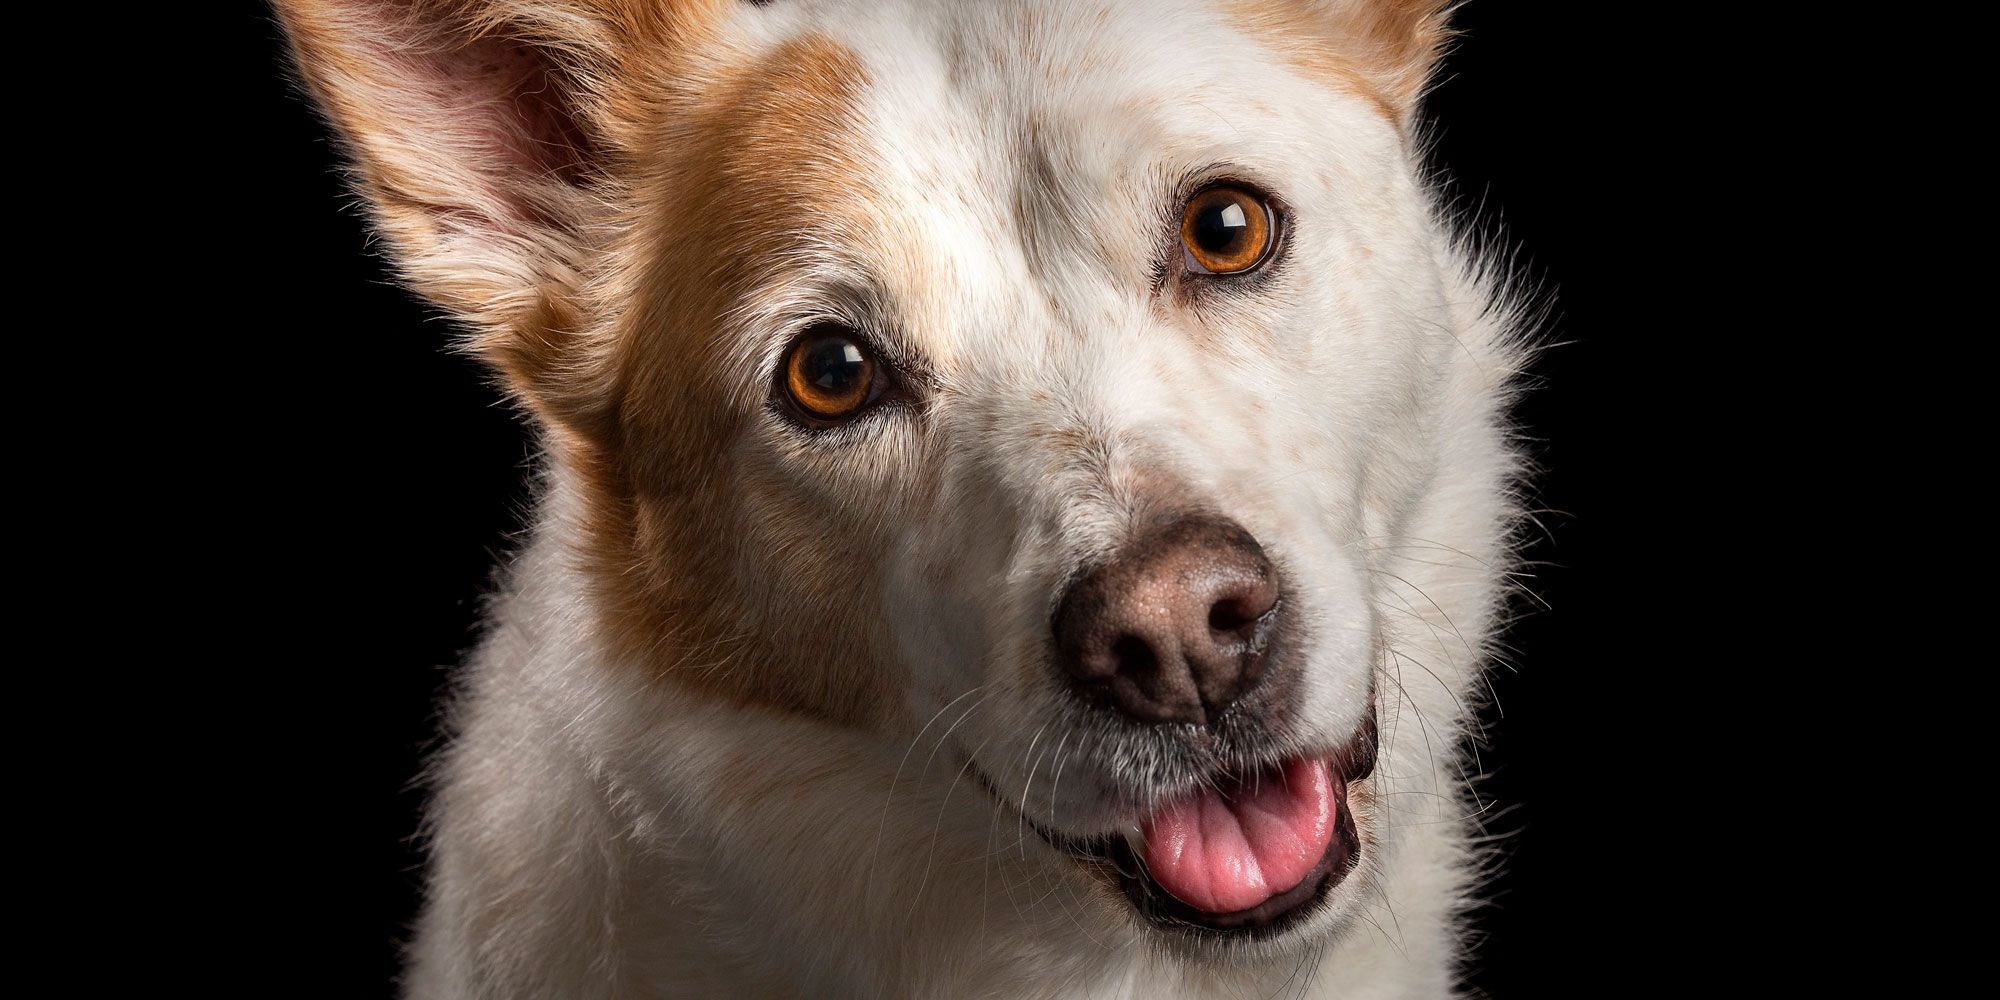 sweet smiling face close up red and white cattle dog cross